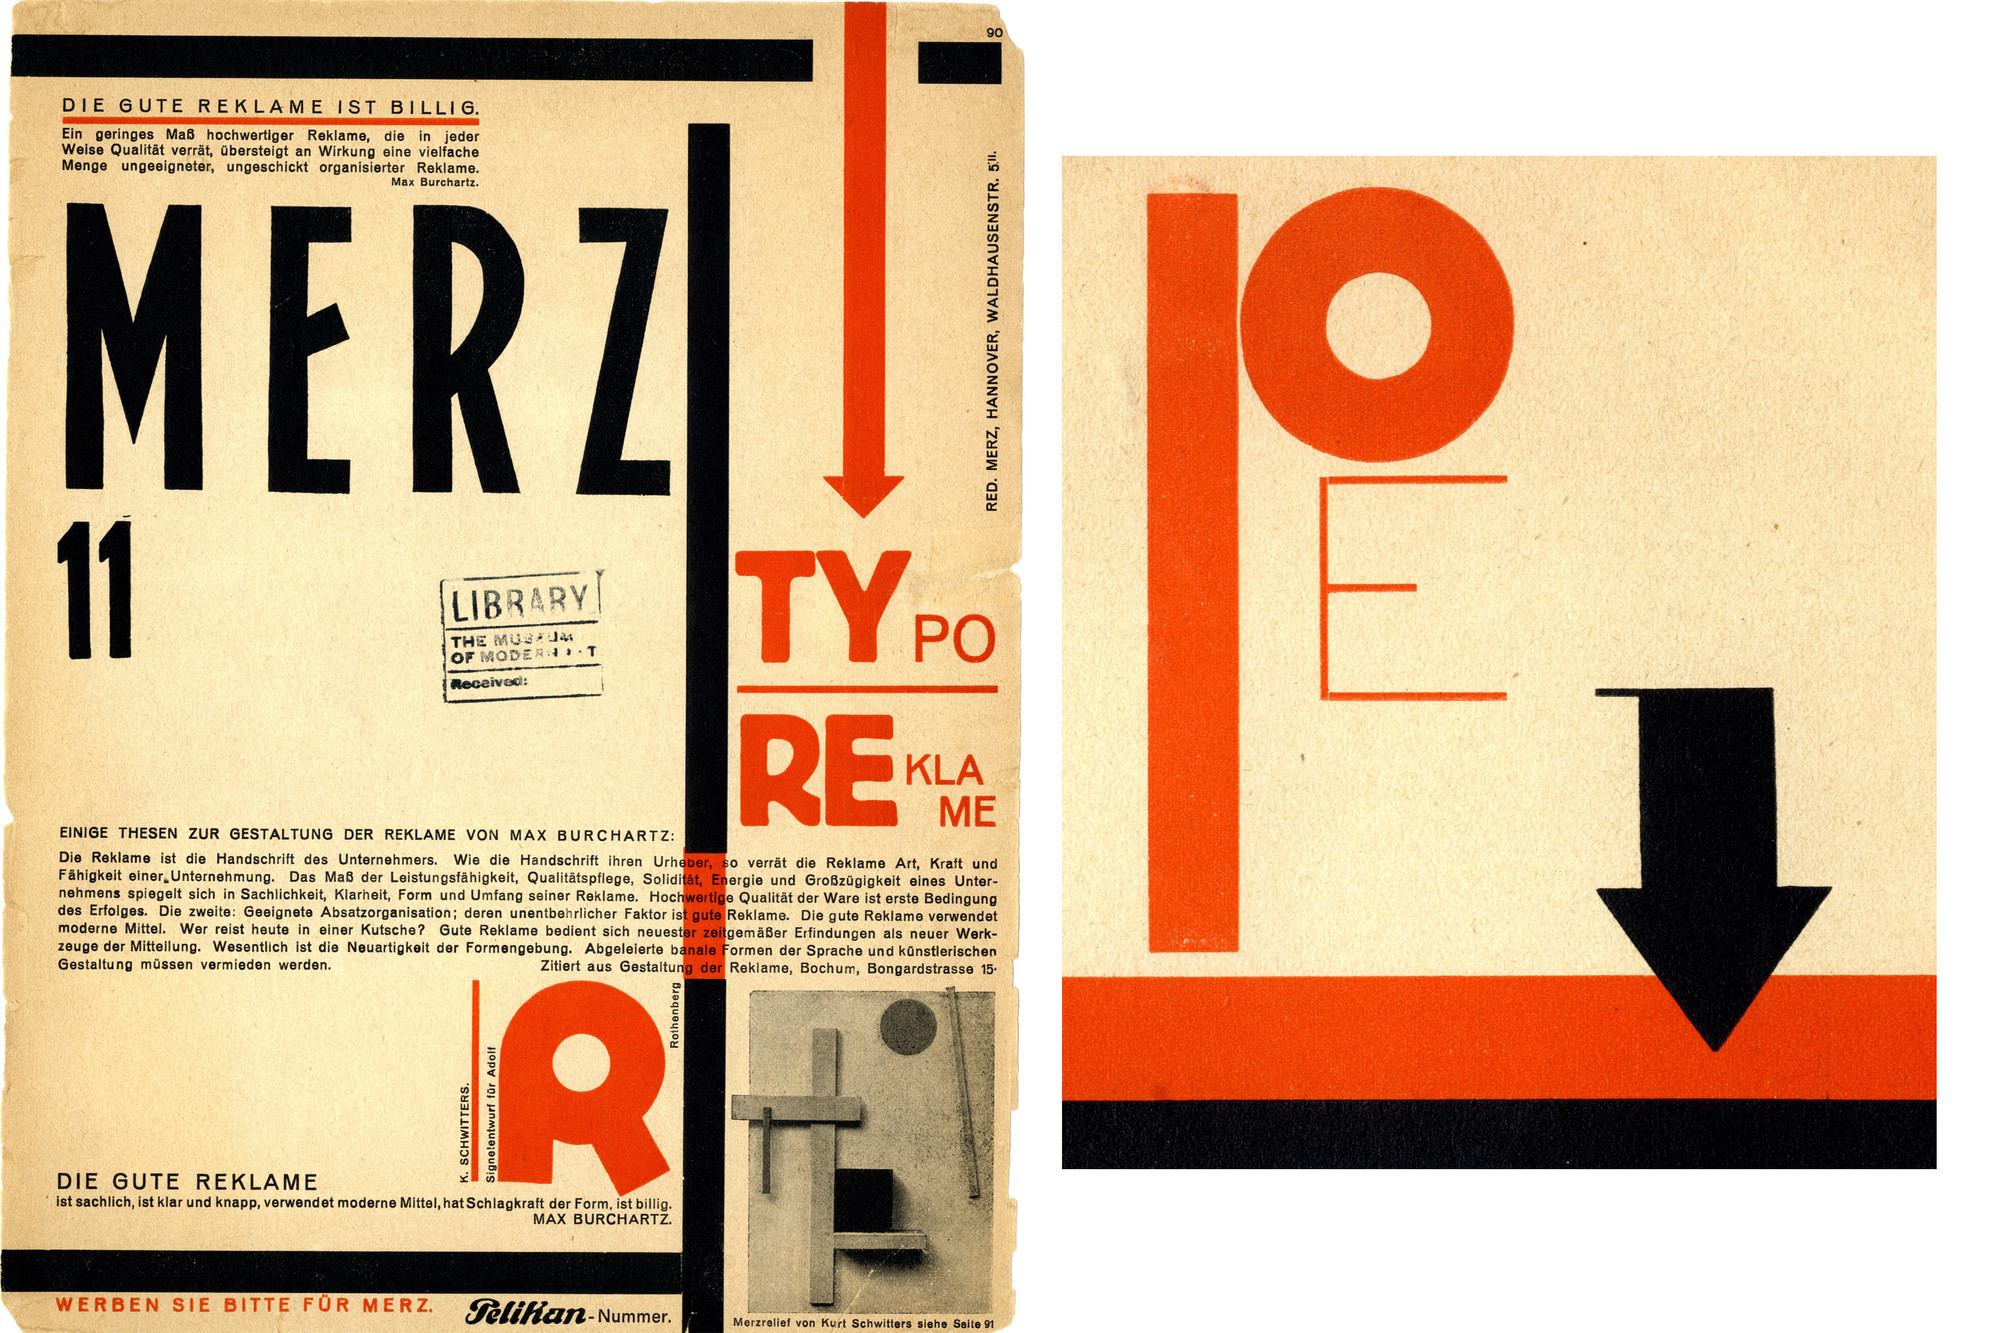 THE ELECTRO-LIBRARY: European Avant-Garde Magazines from the